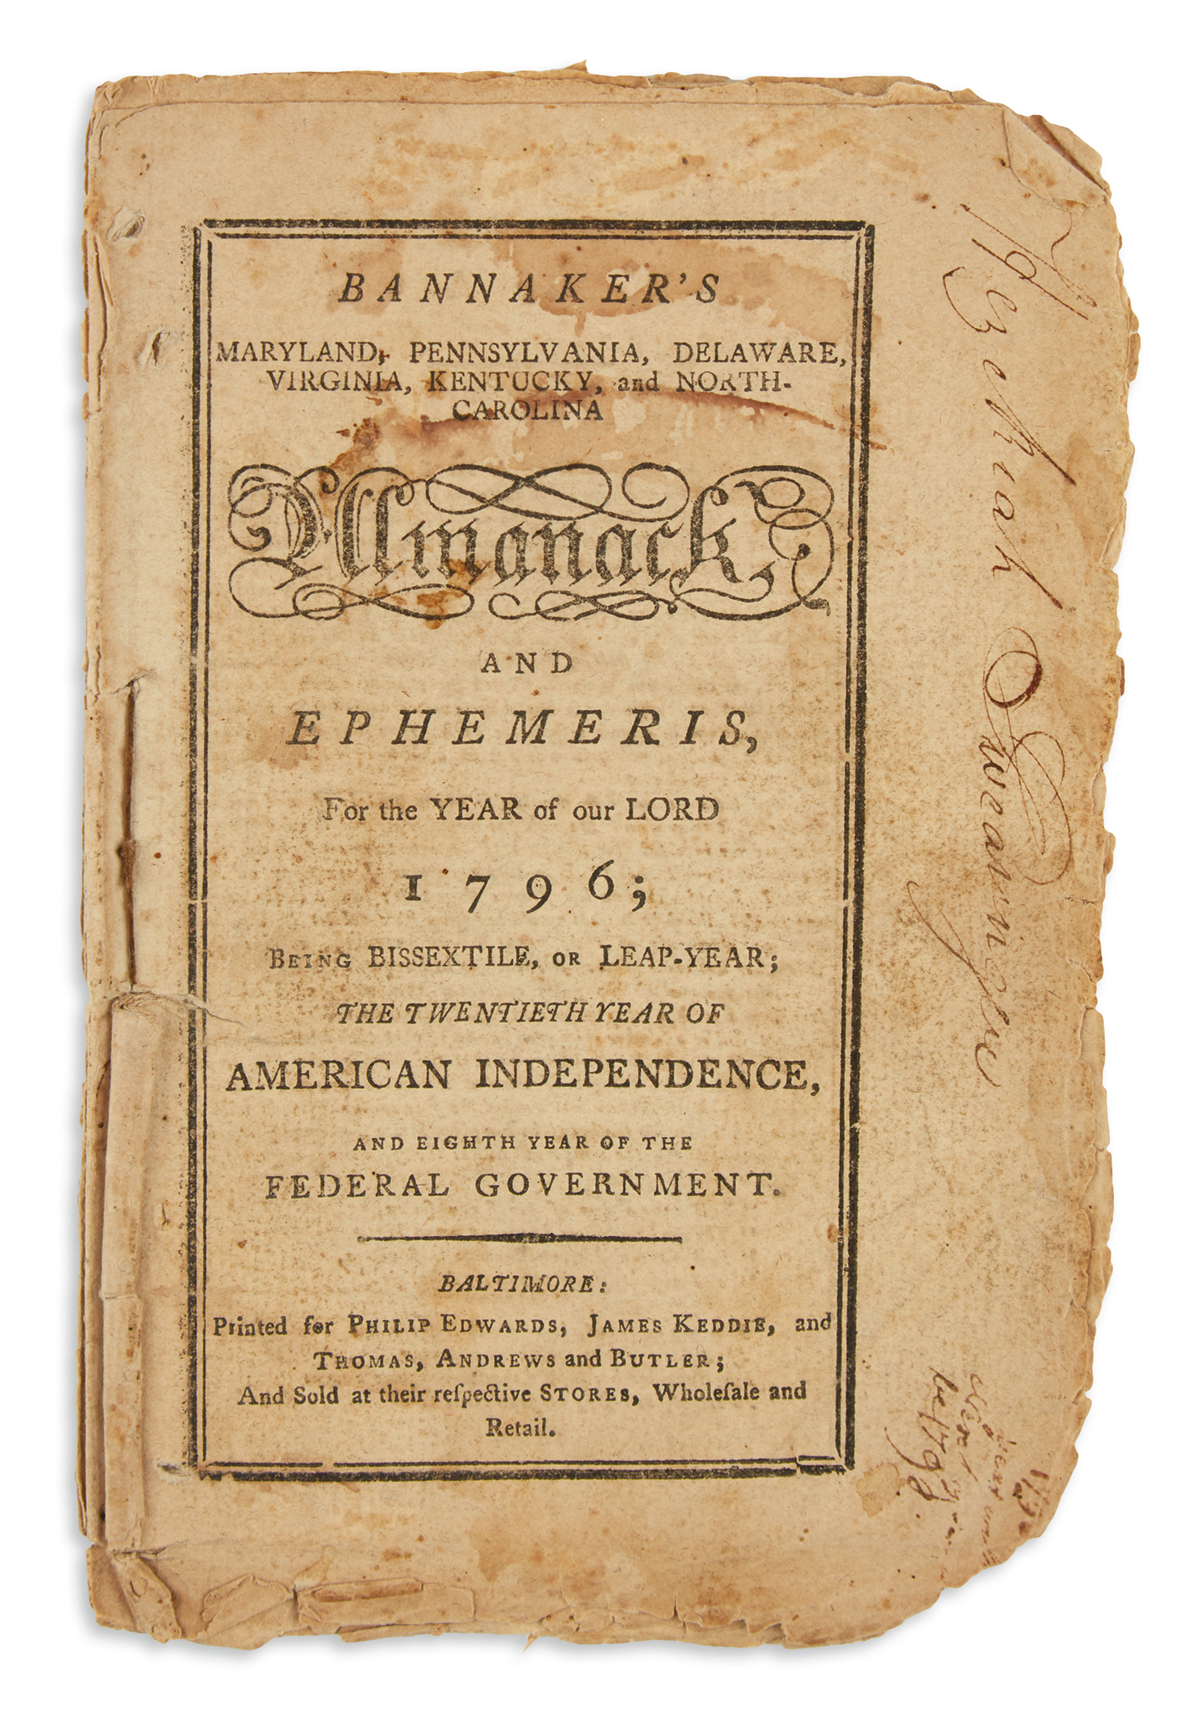 BANNEKER, BENJAMIN. Bannaker's Maryland . . . Almanack and Ephemeris, for the Year of our Lord 1796.